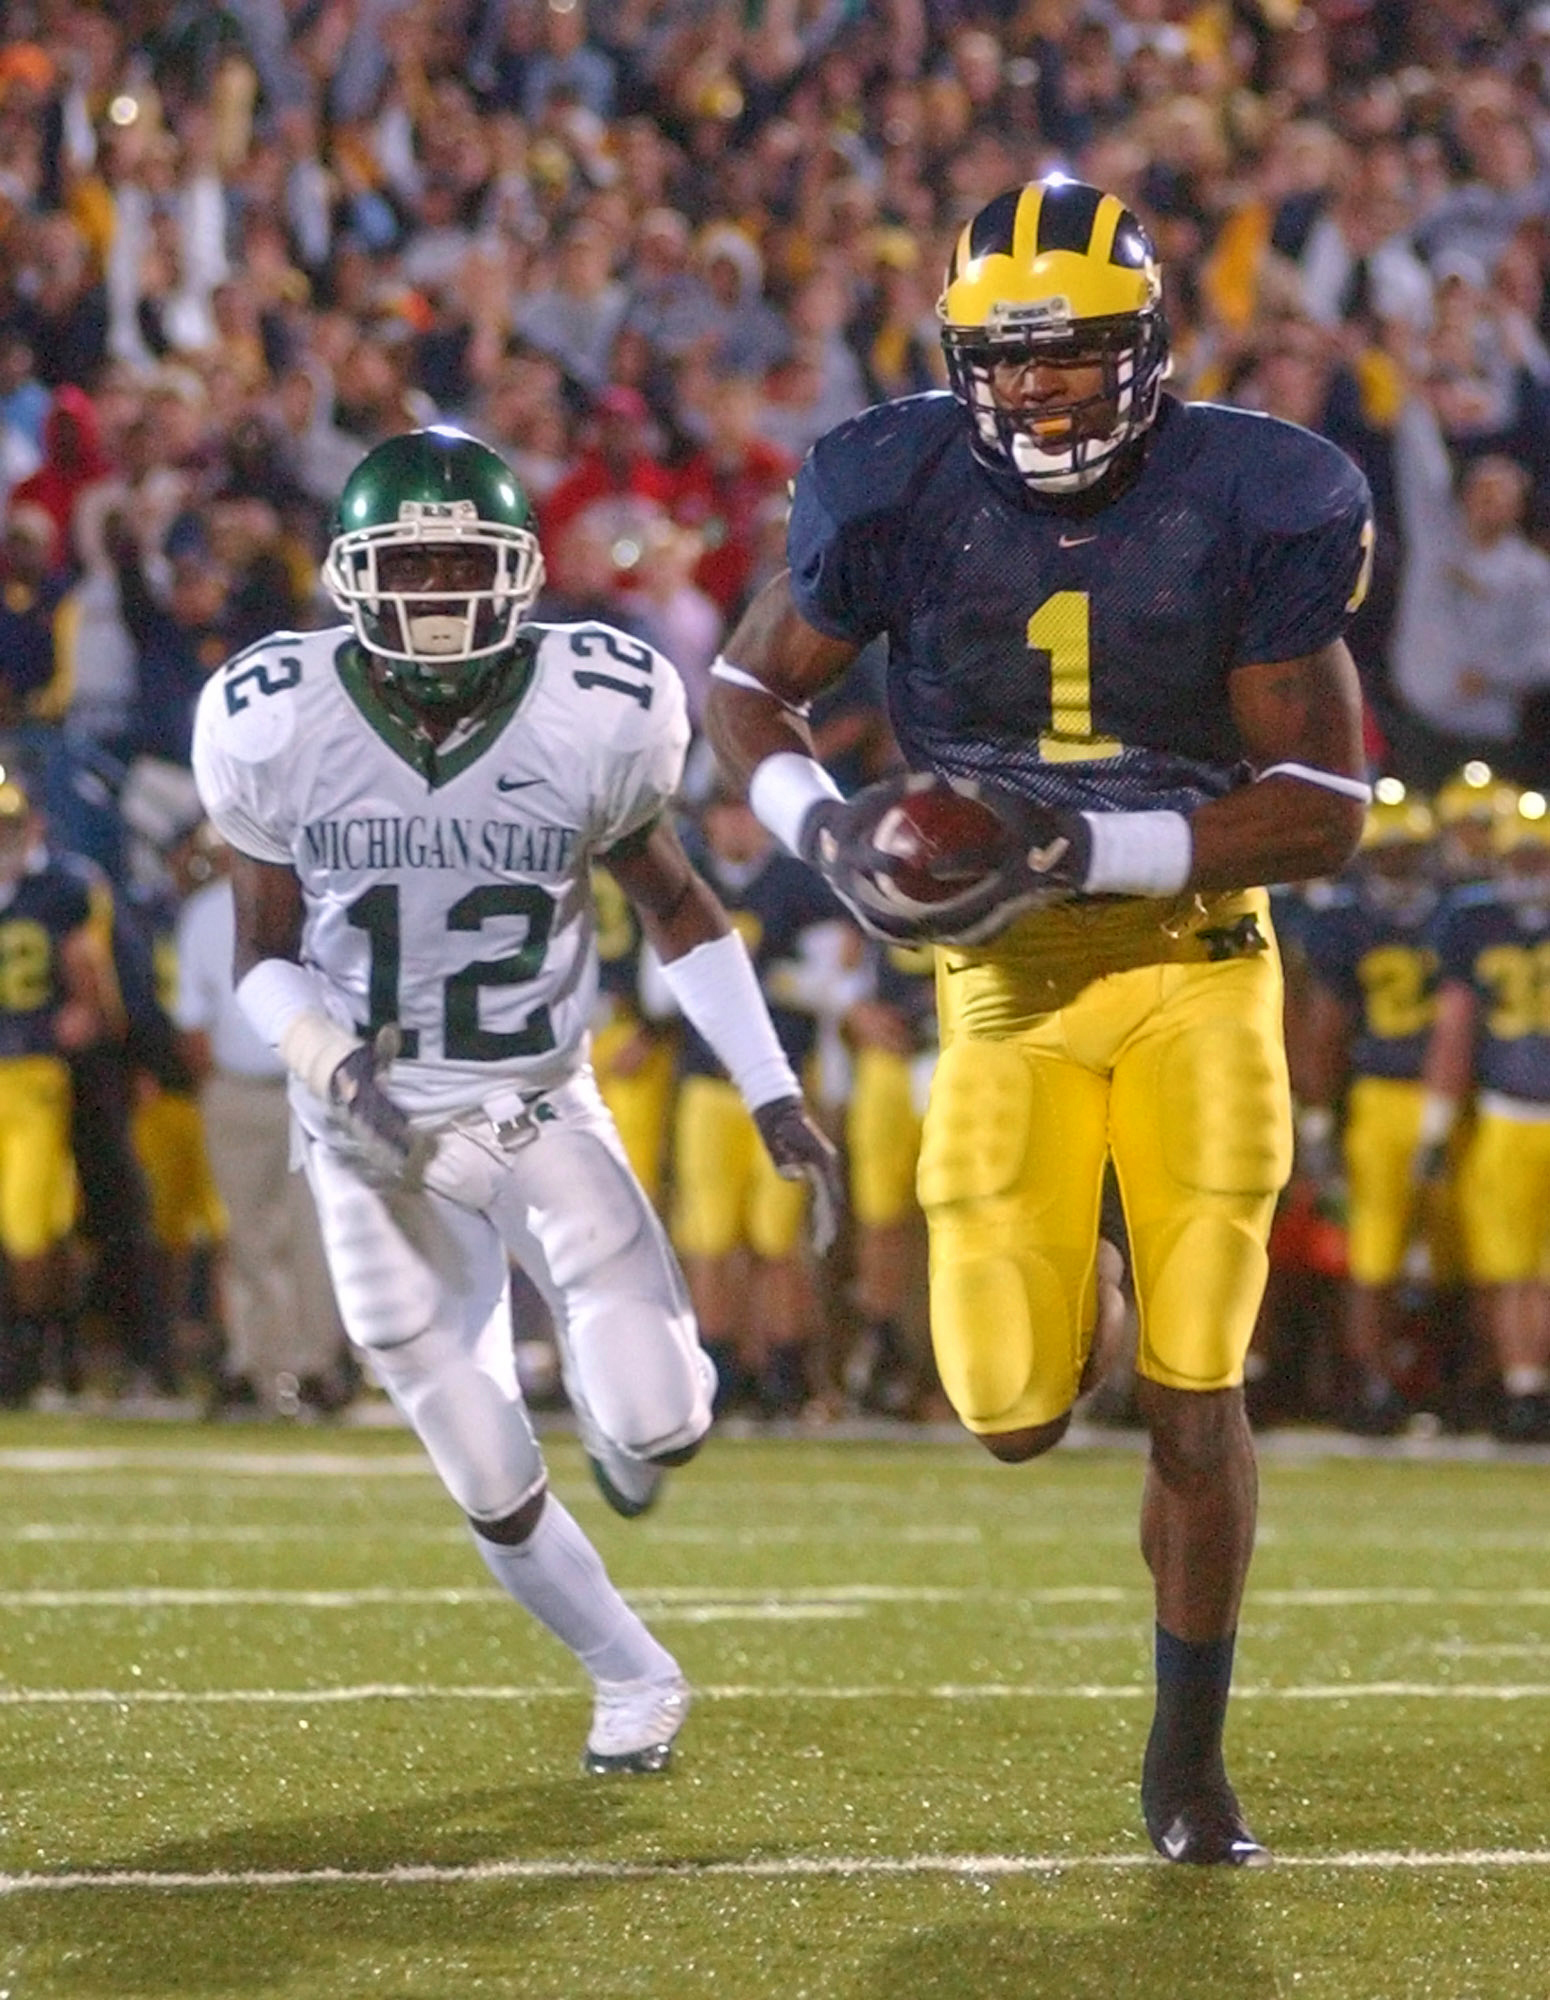 FILE - In this Oct. 20, 2004, file photo, Michigan wide receiver Braylon Edwards (1) outruns Michigan State cornerback Aston Watson (12) for a touchdown during the third overtime period of an NCAA college football game at Michigan Stadium in Ann Arbor, Mi